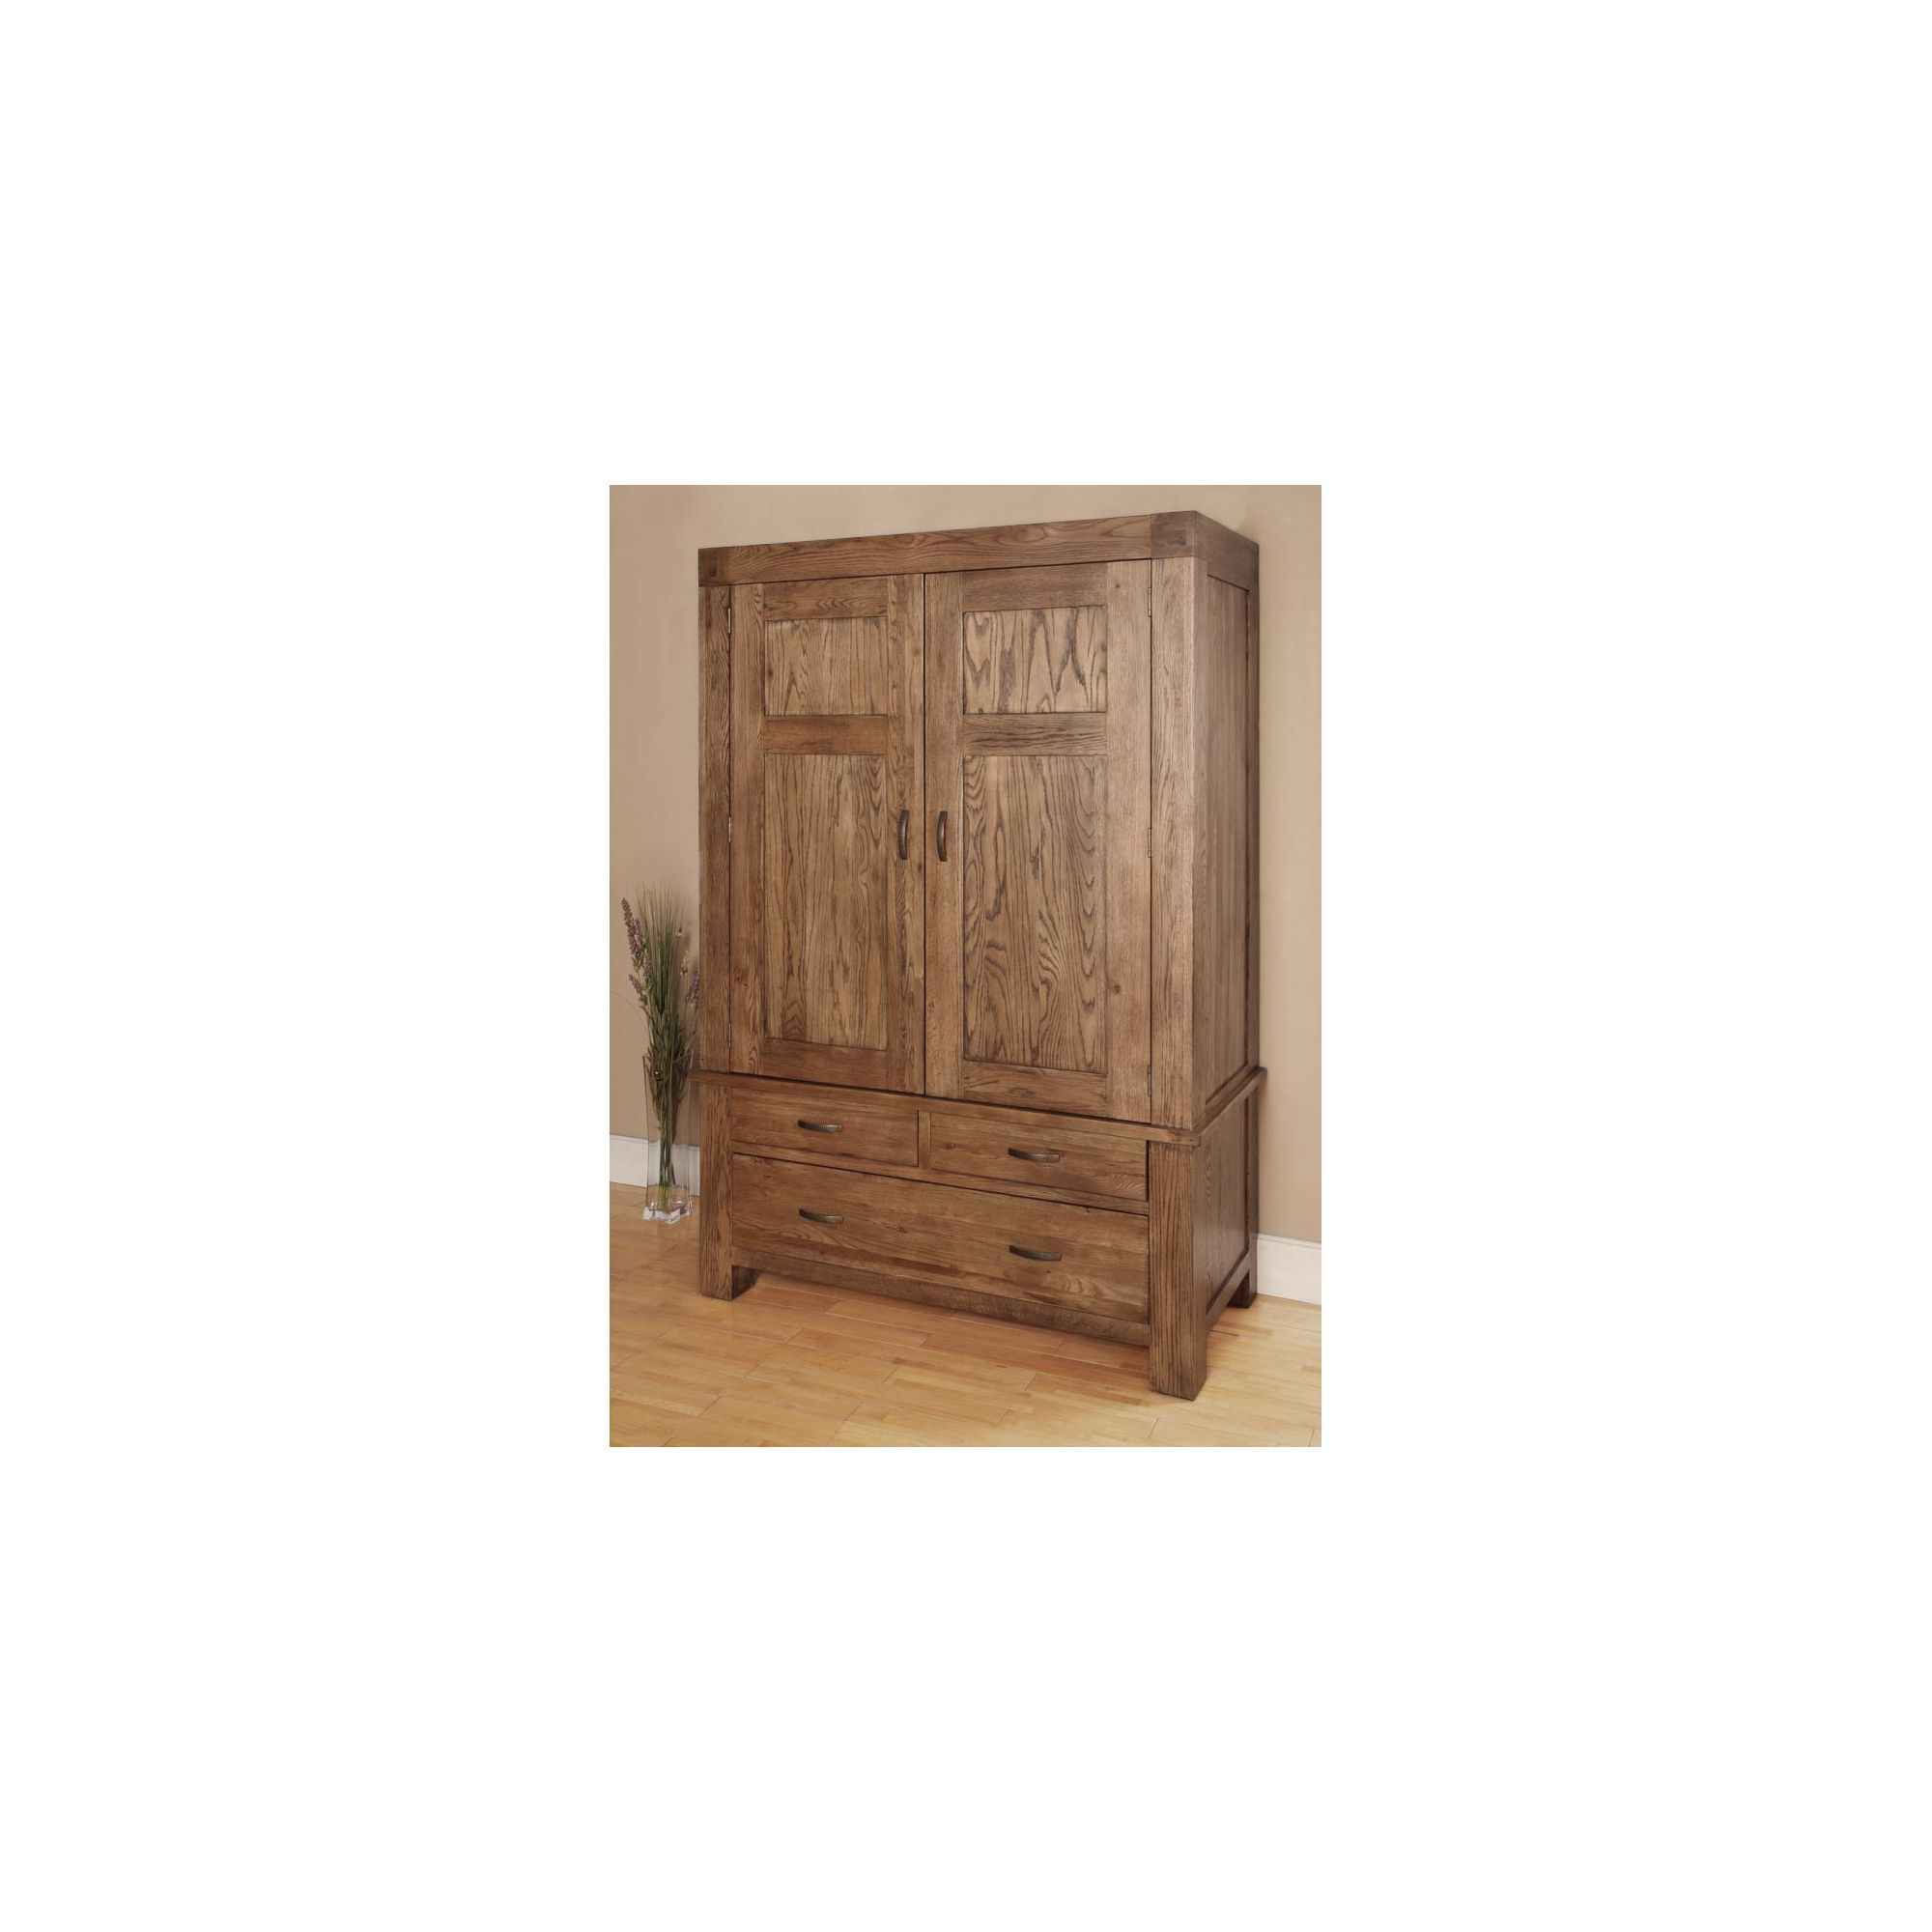 Hawkshead Santana Double Wardrobe in Rich Patina at Tescos Direct